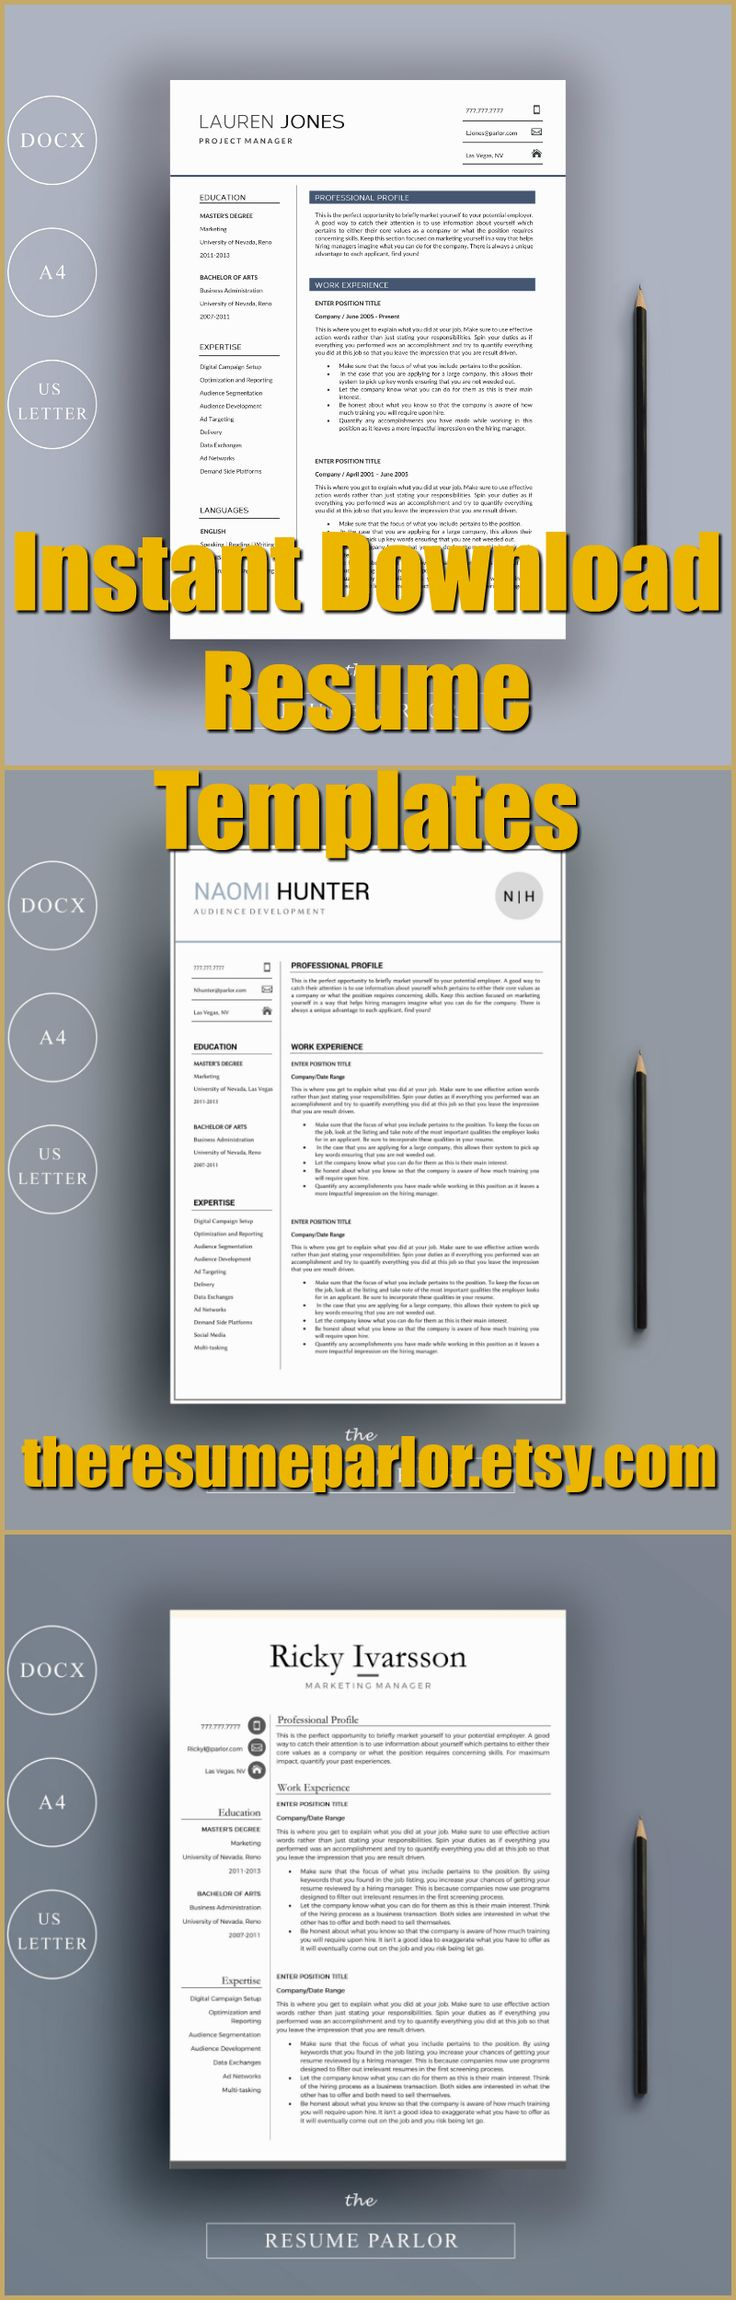 Super easy to fill out resume template for MS Word. Compatible with MS Word 2007 and later docx format.